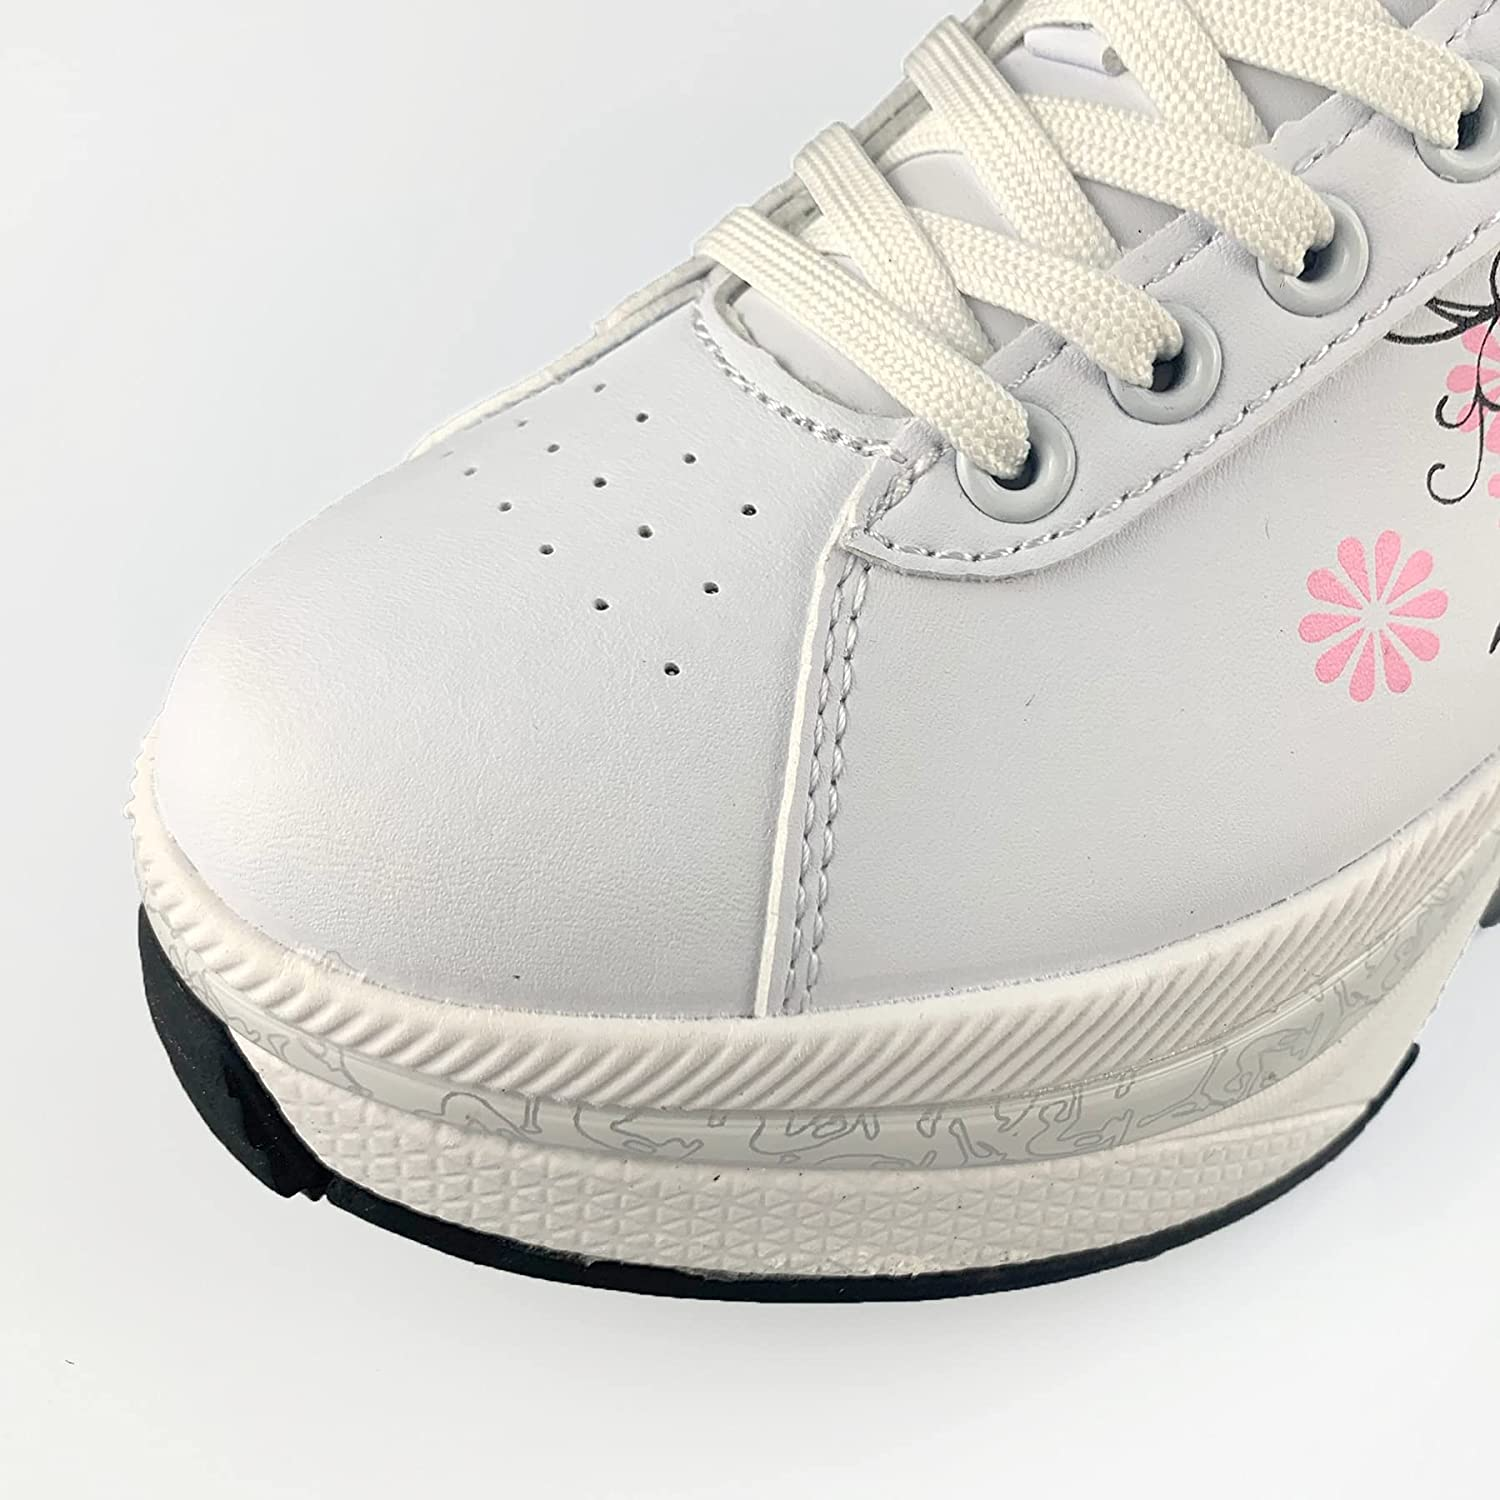 2021 Leather Pink Roller Skates Deformation Shoes with 4 Wheels Adults Unisex Casual Shoes Children Skates Double Wheel Shoes enlarge